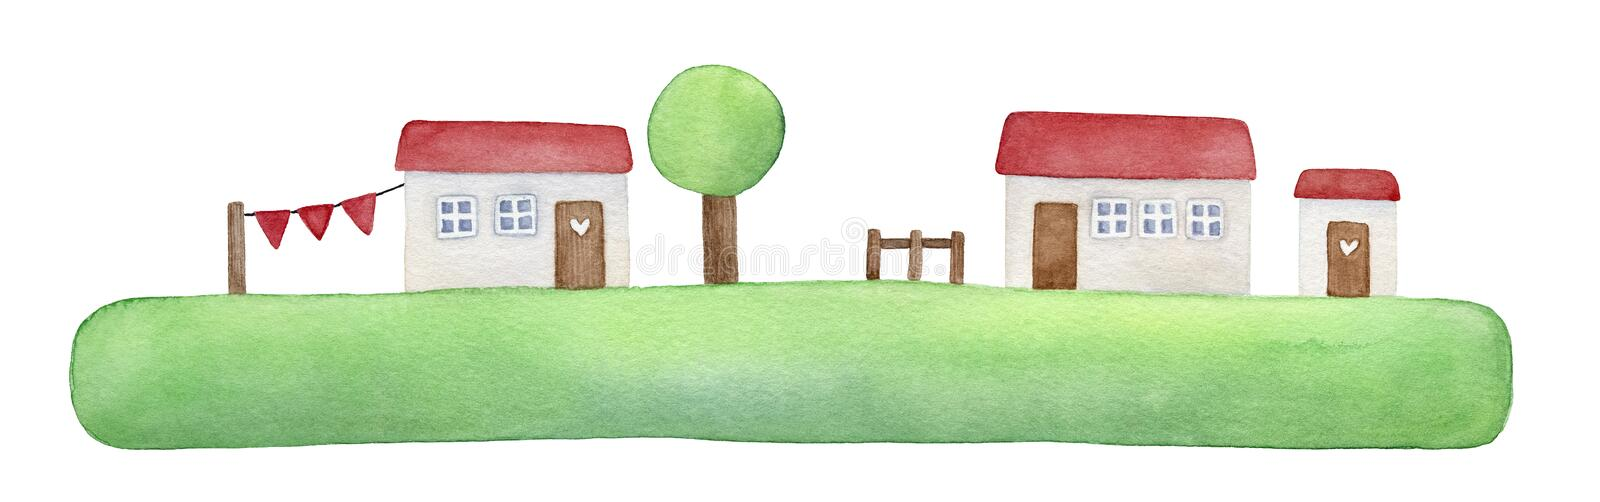 Peaceful illustration of green grass island, white little houses, red roof, wooden doors wih love hearts. royalty free illustration